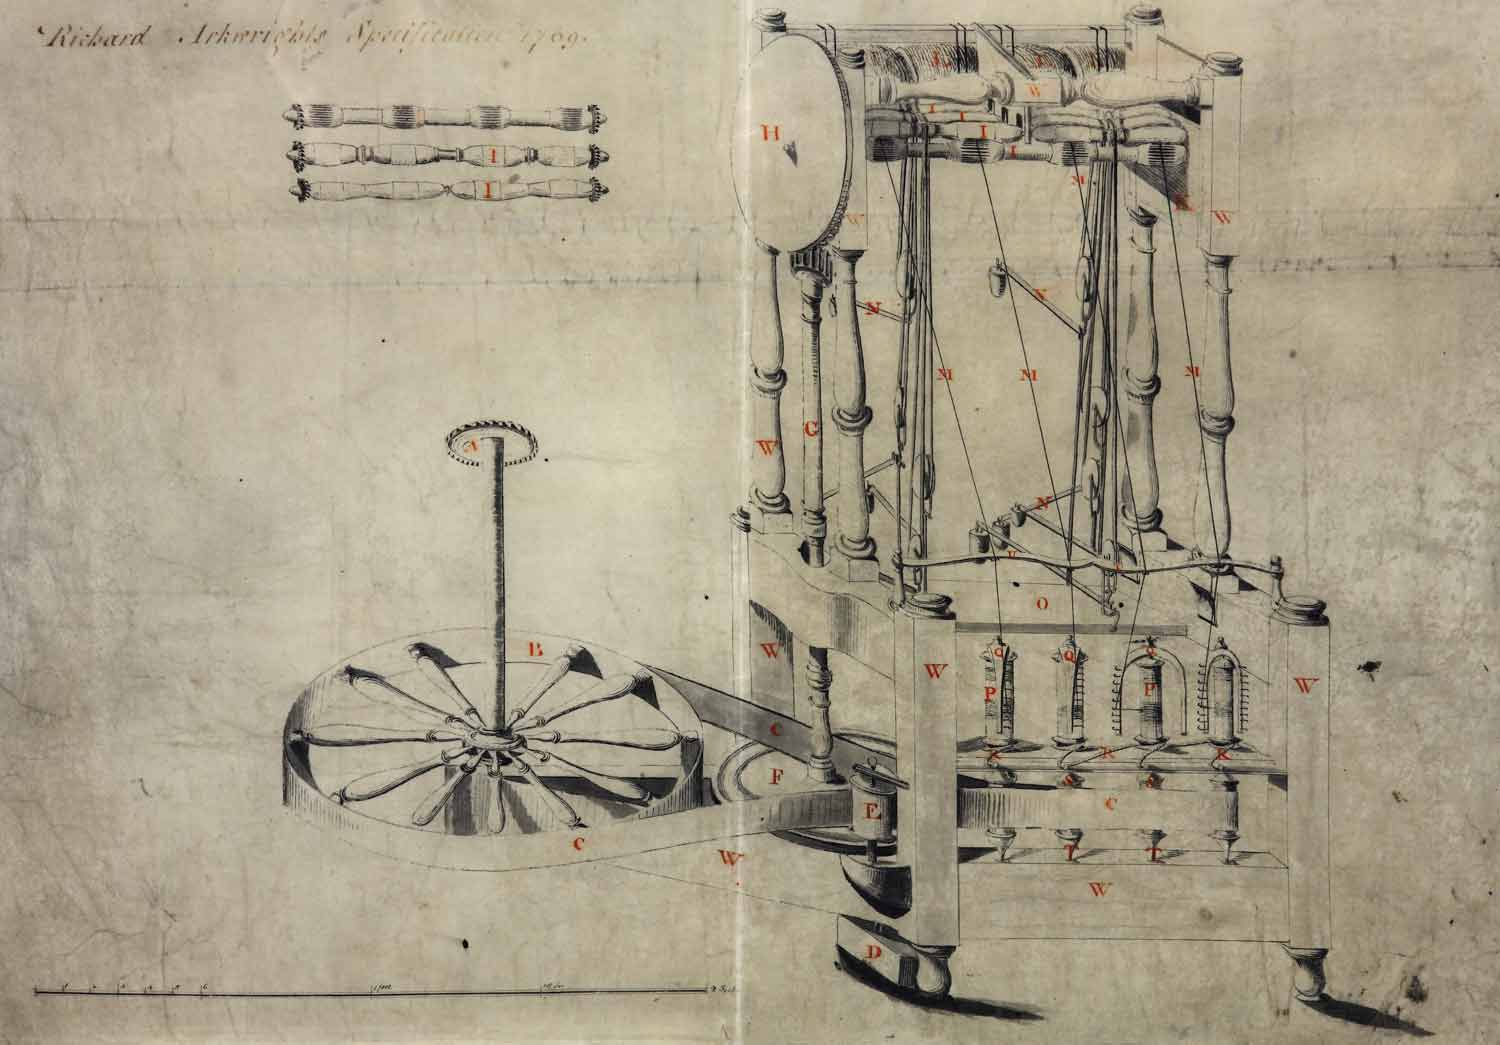 Richard Arkwright's specification for his spinning frame (1769) (C73/13 m31)